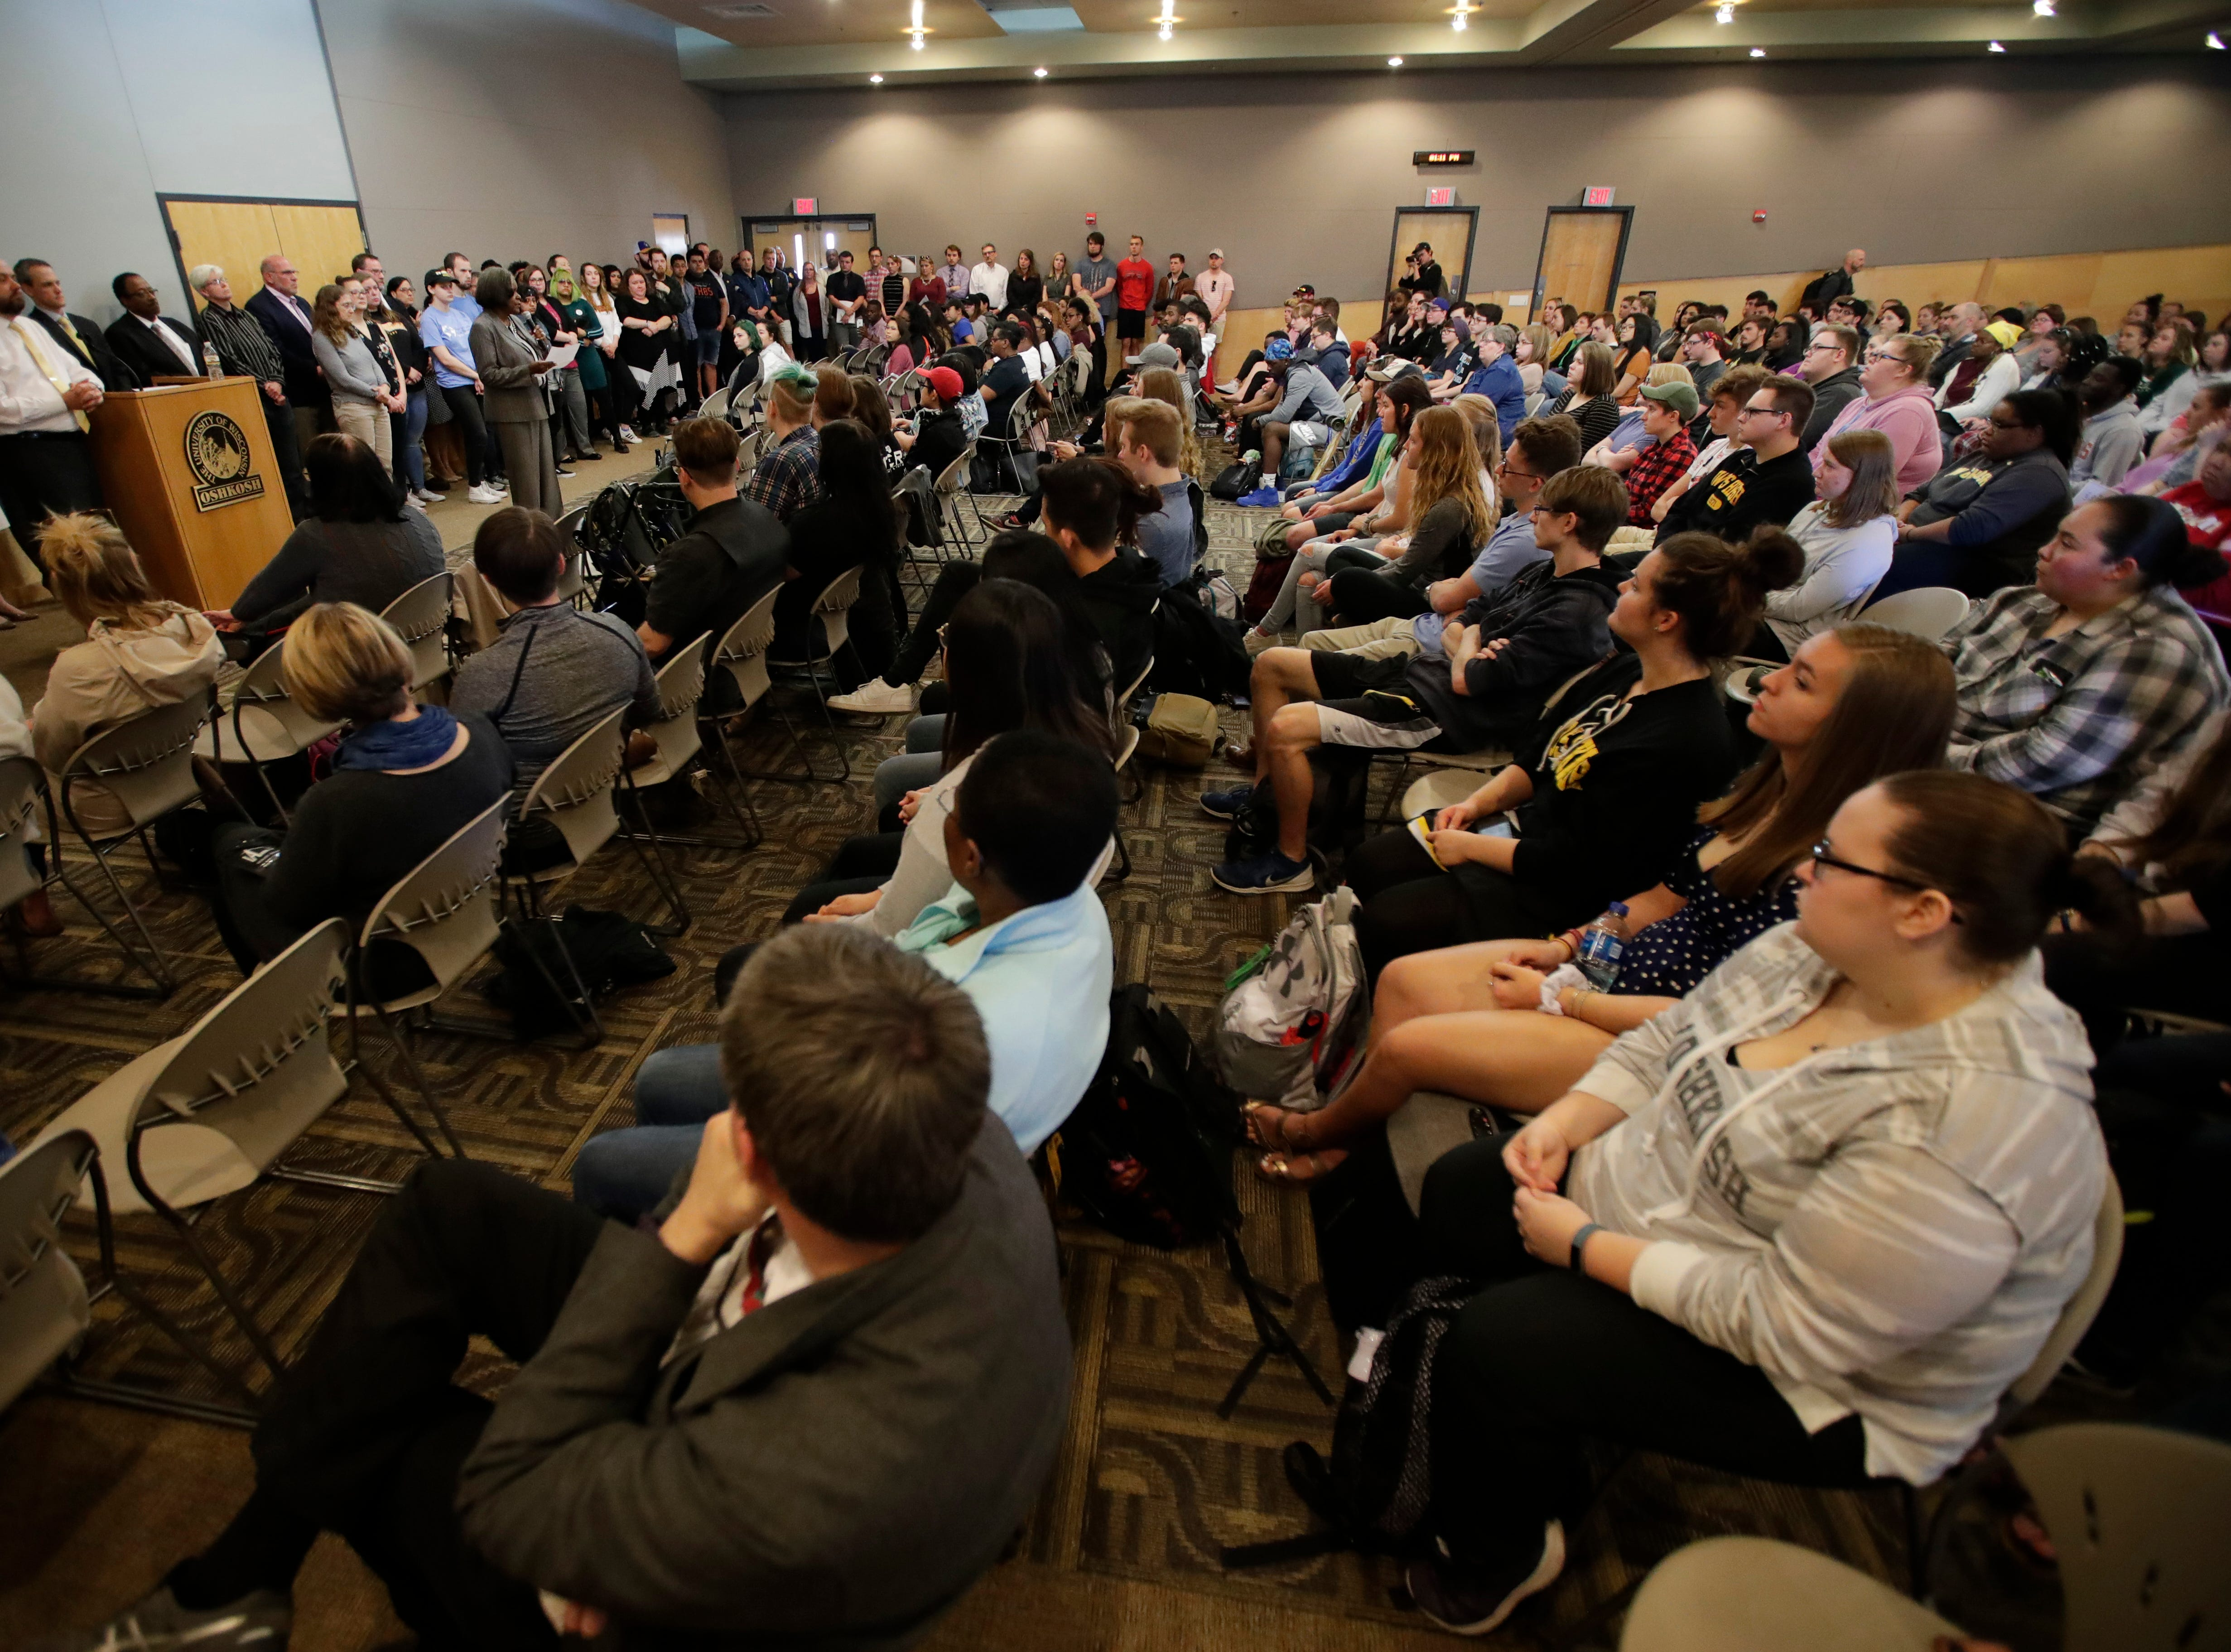 Sylvia Carey-Butler, associate vice chancellor for academic support of inclusive excellence, speaks to the crowd during a public forum regarding a viral social media post that showed racist messages that involved students Friday, April 26, 2019, at the University of Wisconsin-Oshkosh's Reeve Memorial Union in Oshkosh, Wis. 